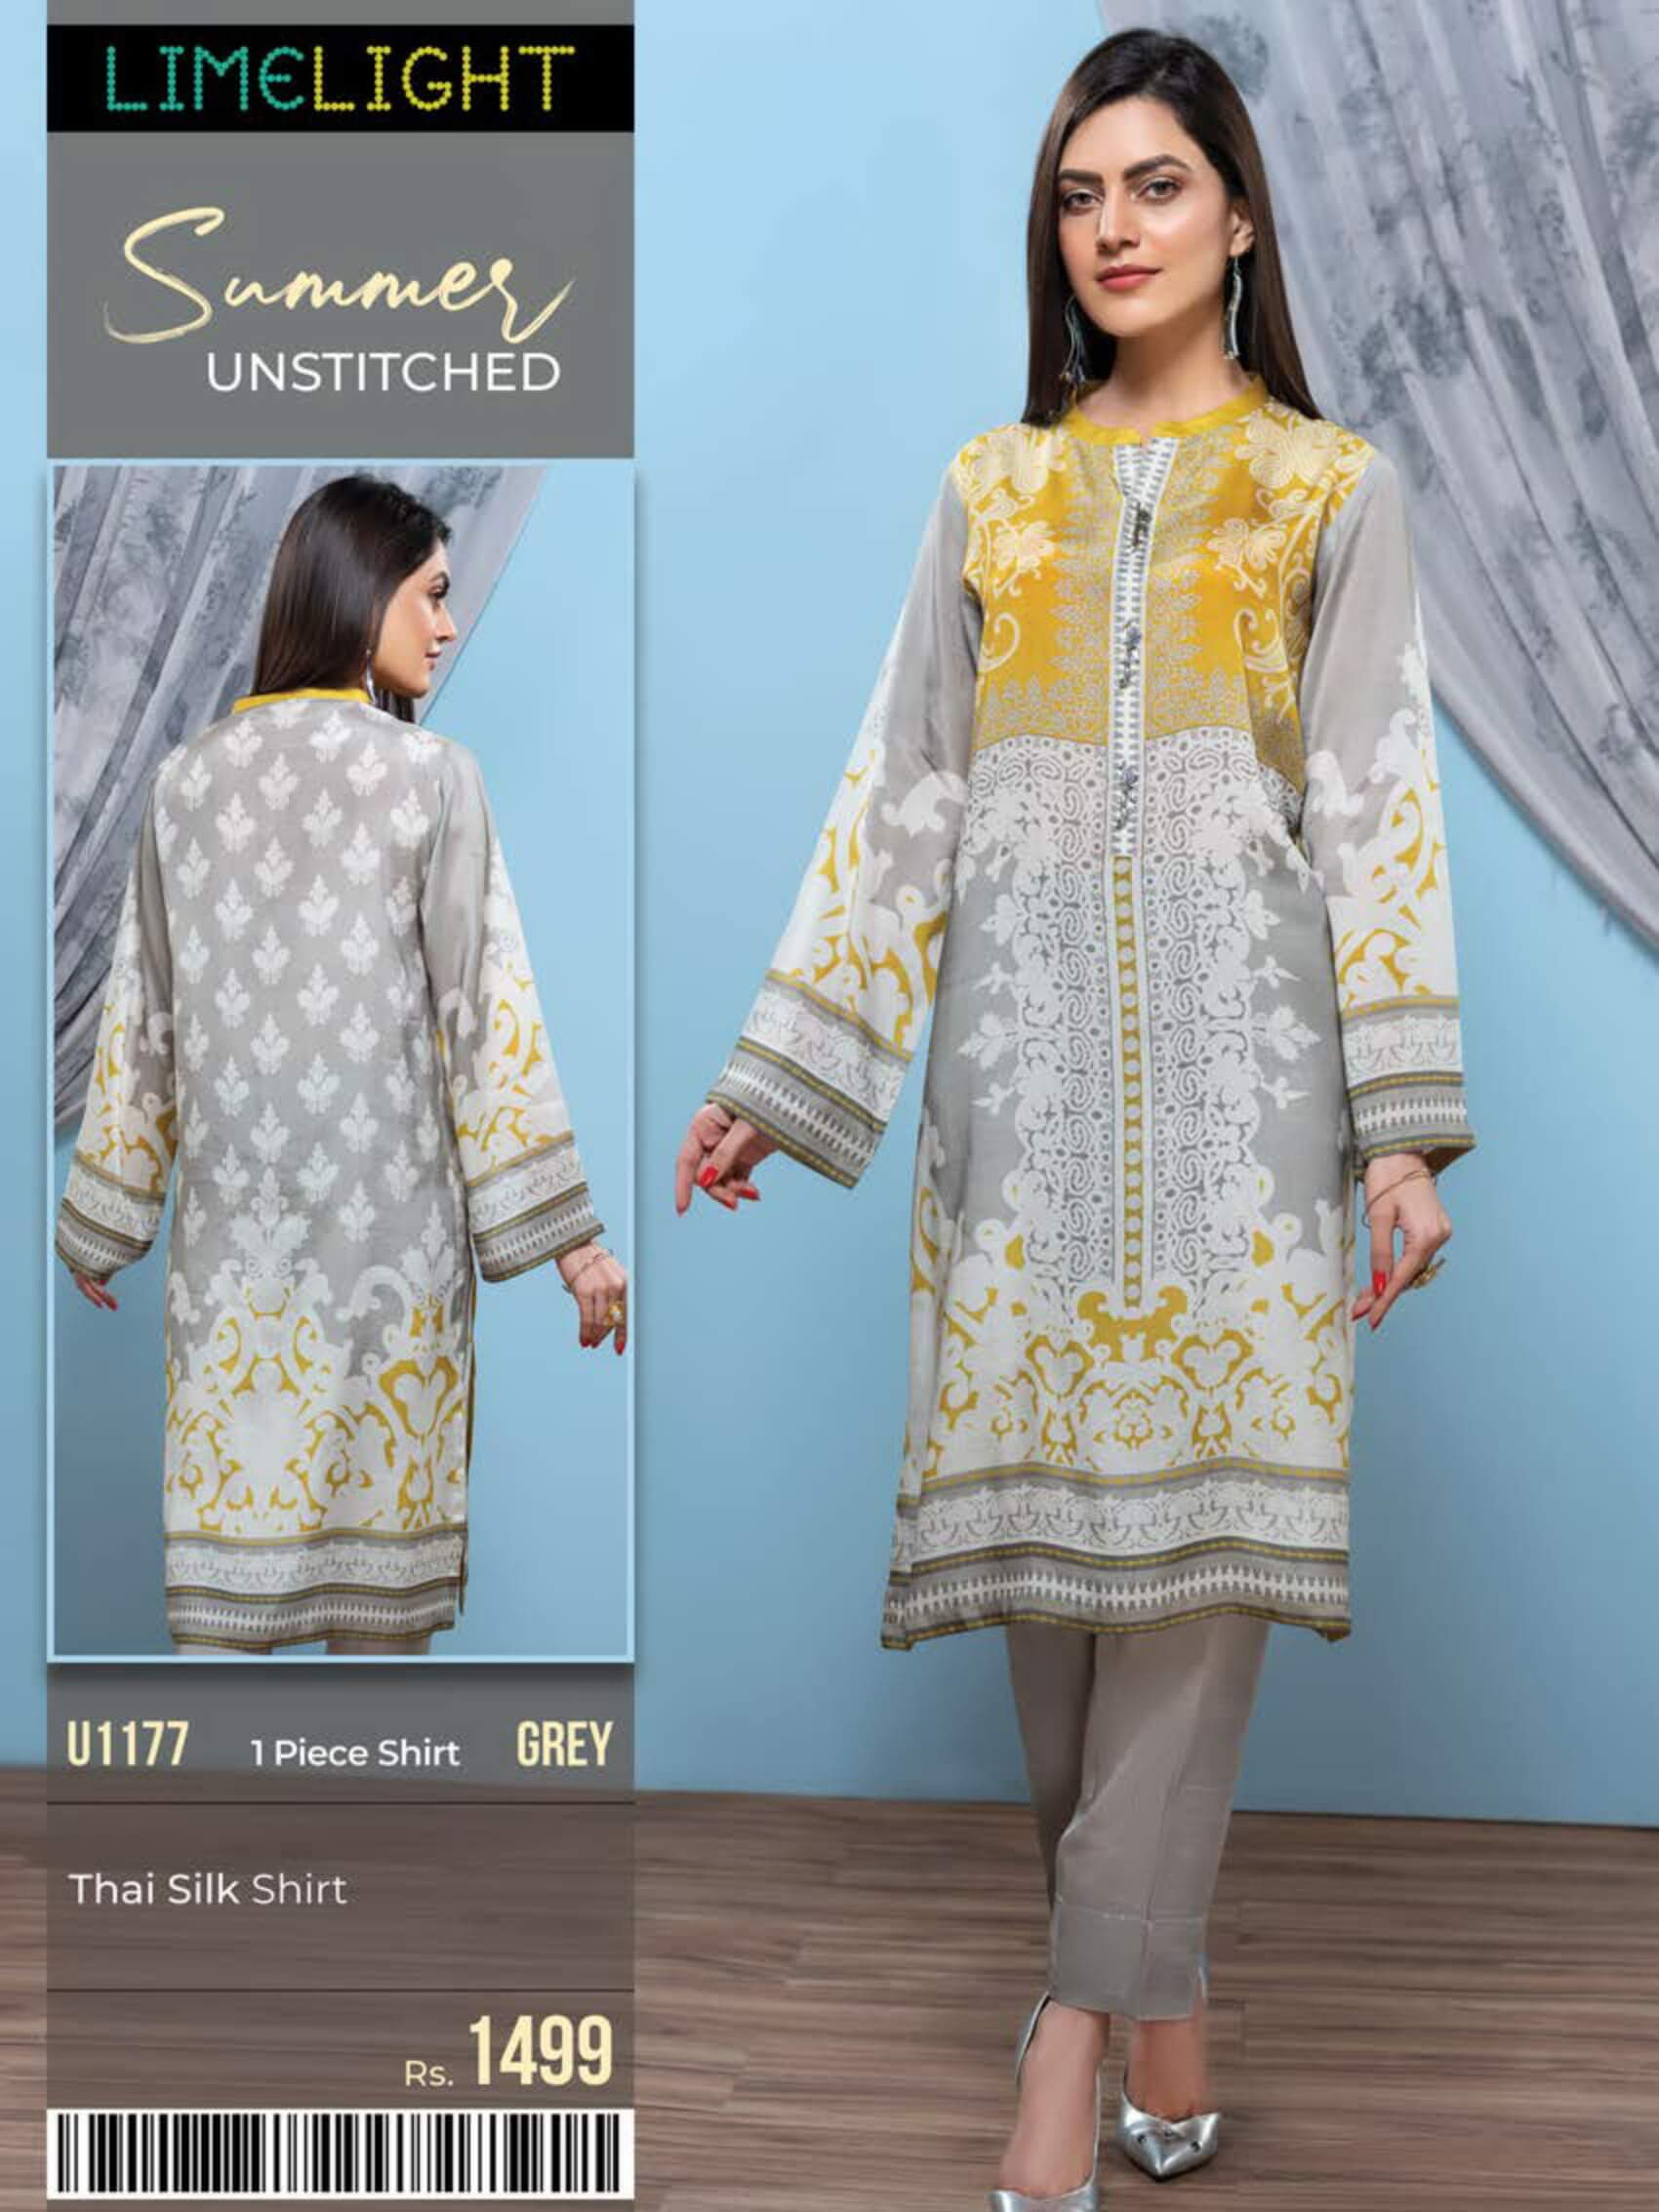 Limelight Lawn Shirt Summer Unstitched 2020 Thai Silk U1177 Grey - FaisalFabrics.pk